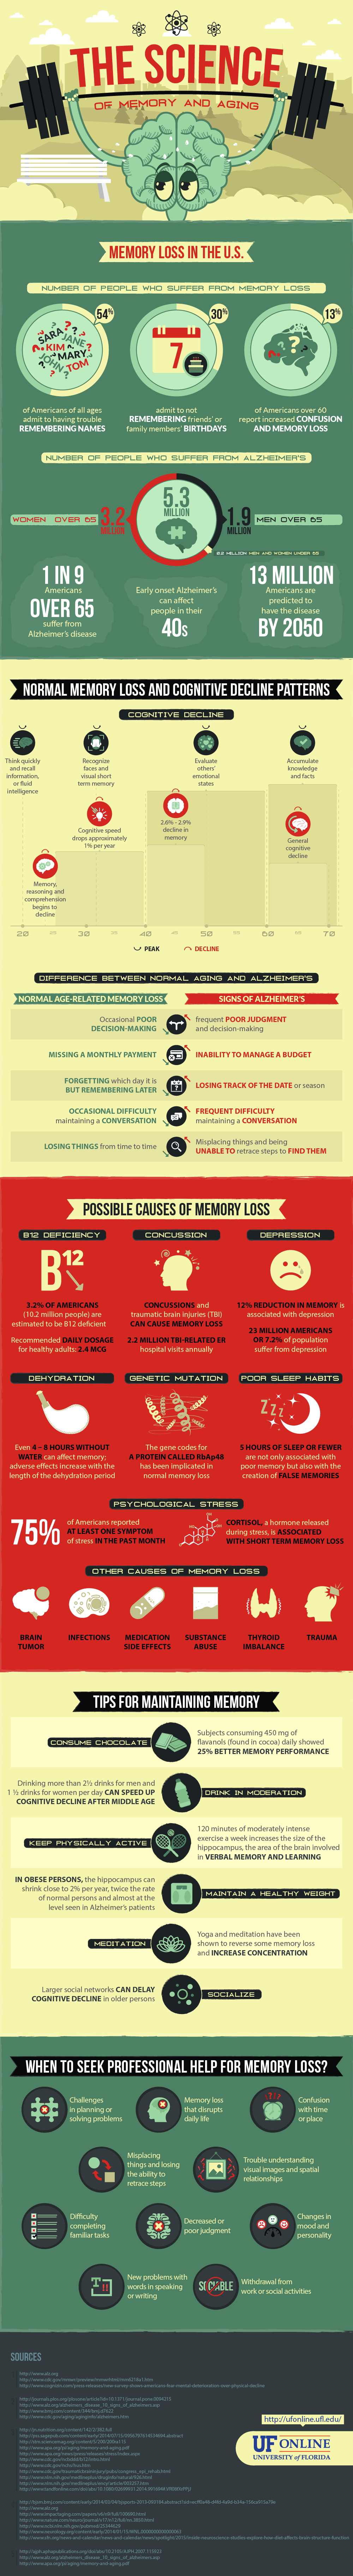 UF Online Infographic: The Science of Memory and Aging